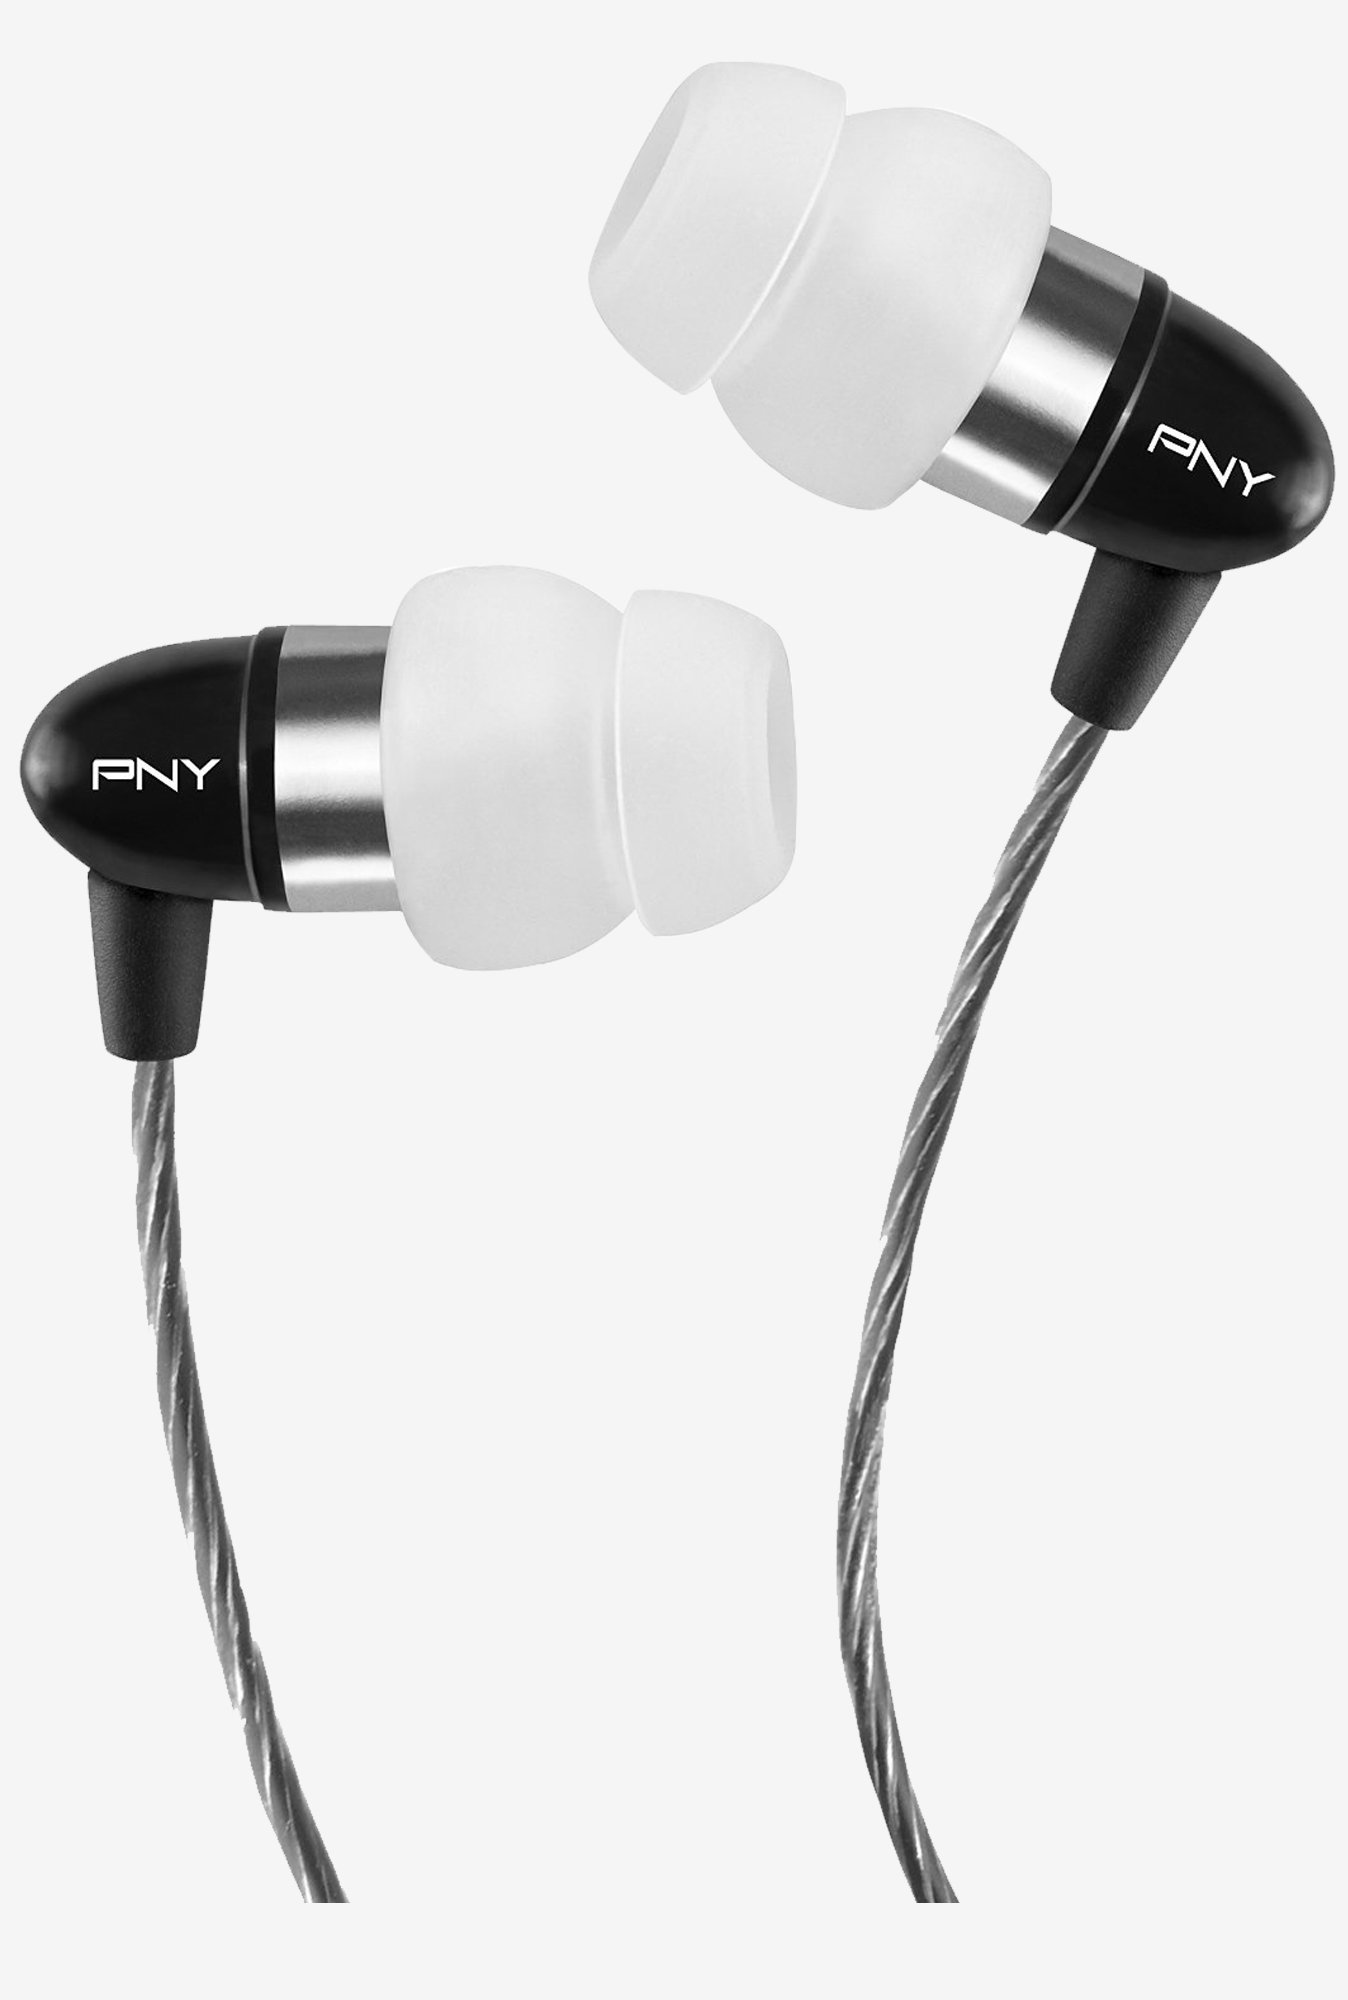 PNY AUD E 202 BK A RB In Ear Earphone (Black)